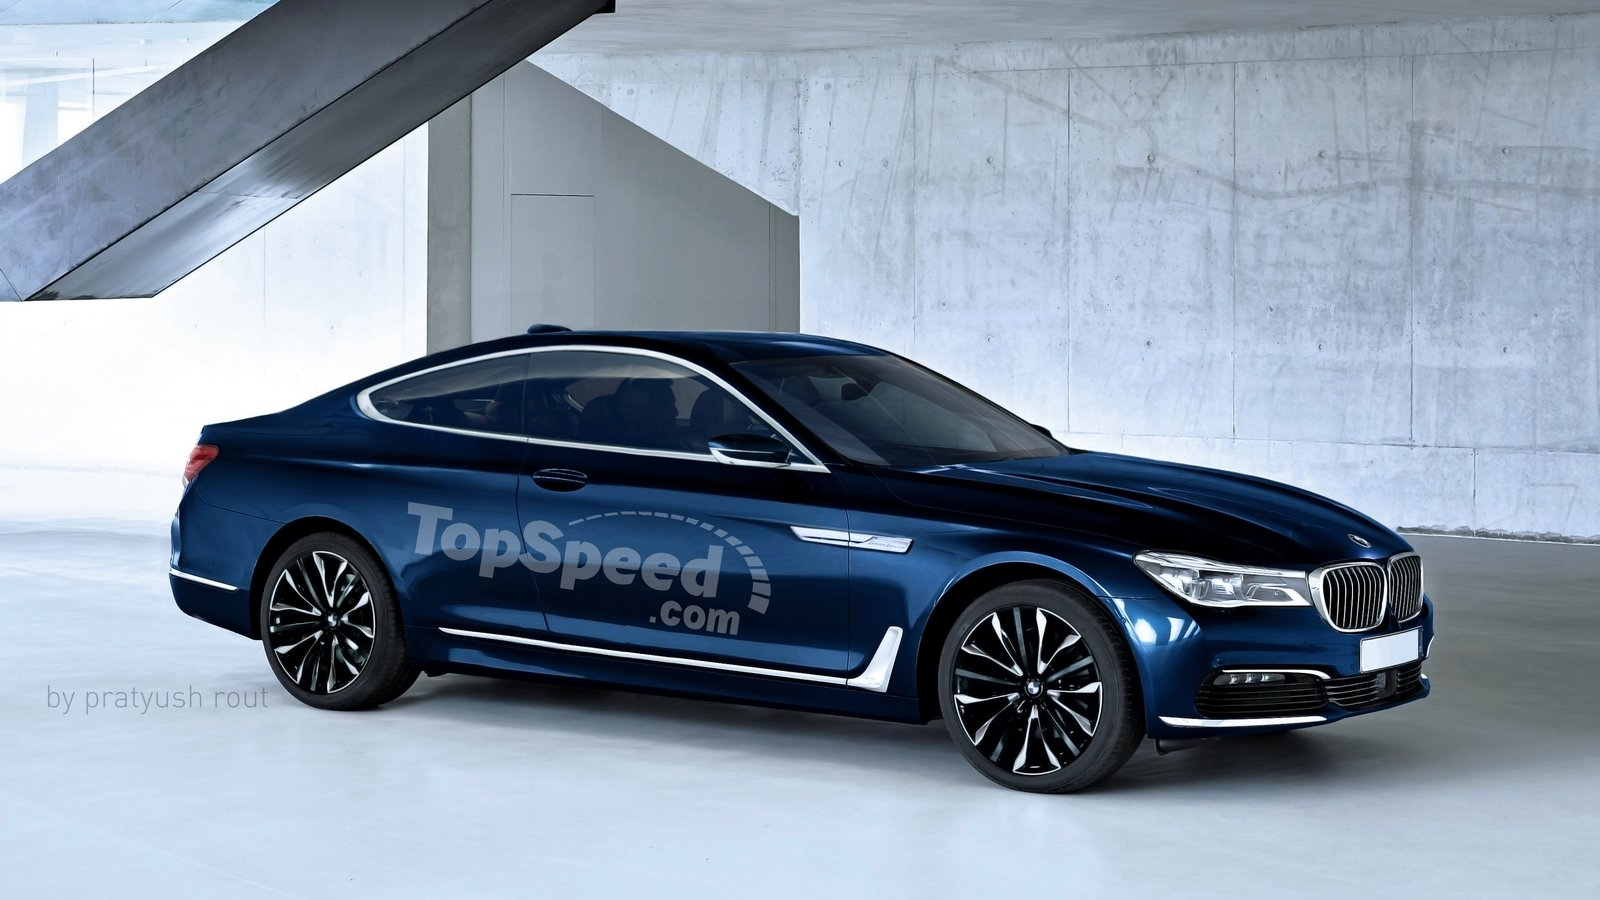 2019 bmw 8 series picture 688344 car review top speed. Black Bedroom Furniture Sets. Home Design Ideas